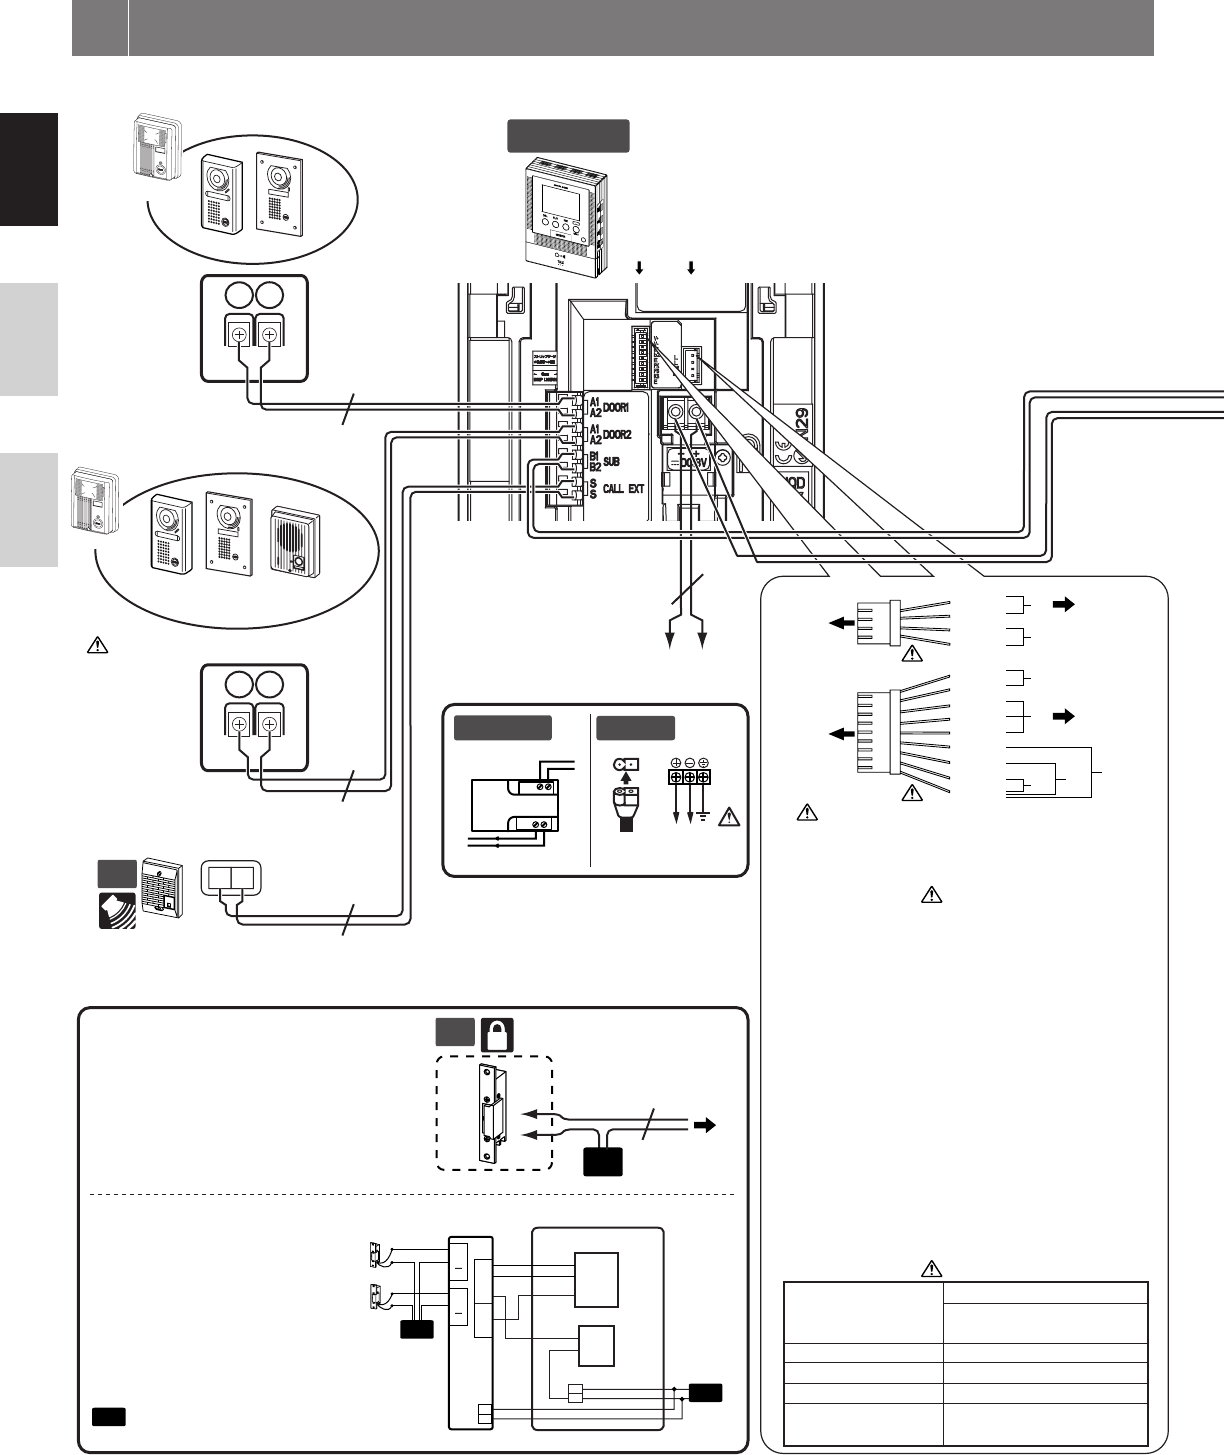 bfb05761 b44c 422c 9473 8156de703524 bg4 page 4 of aiphone intercom system jf 2med user guide aiphone wiring diagram at creativeand.co